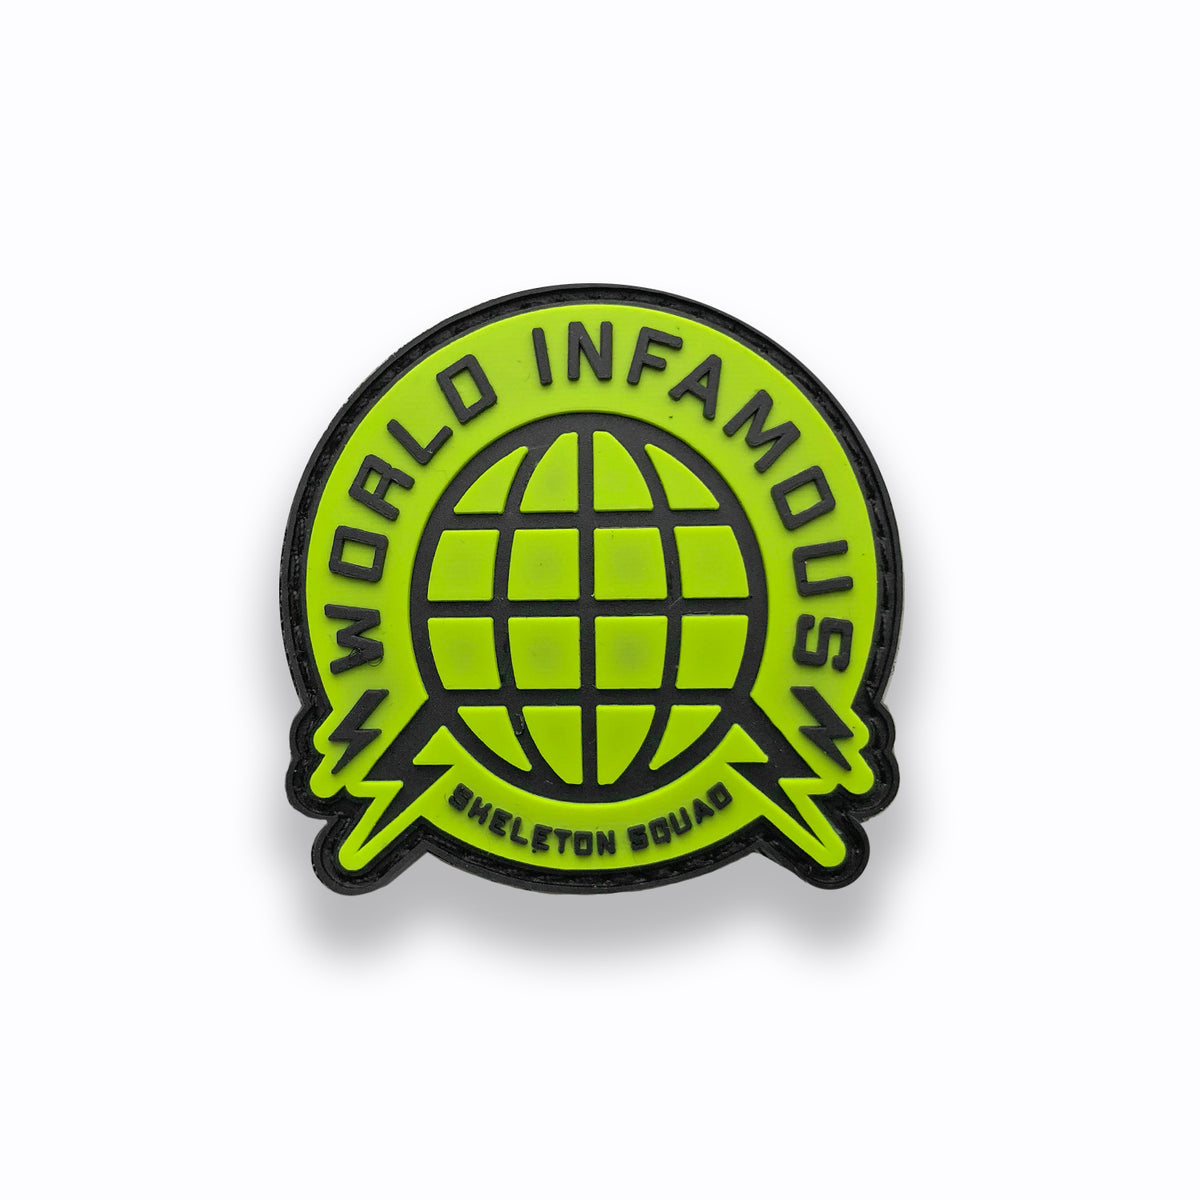 World Infamous Circle Paintball Patch (2x2)